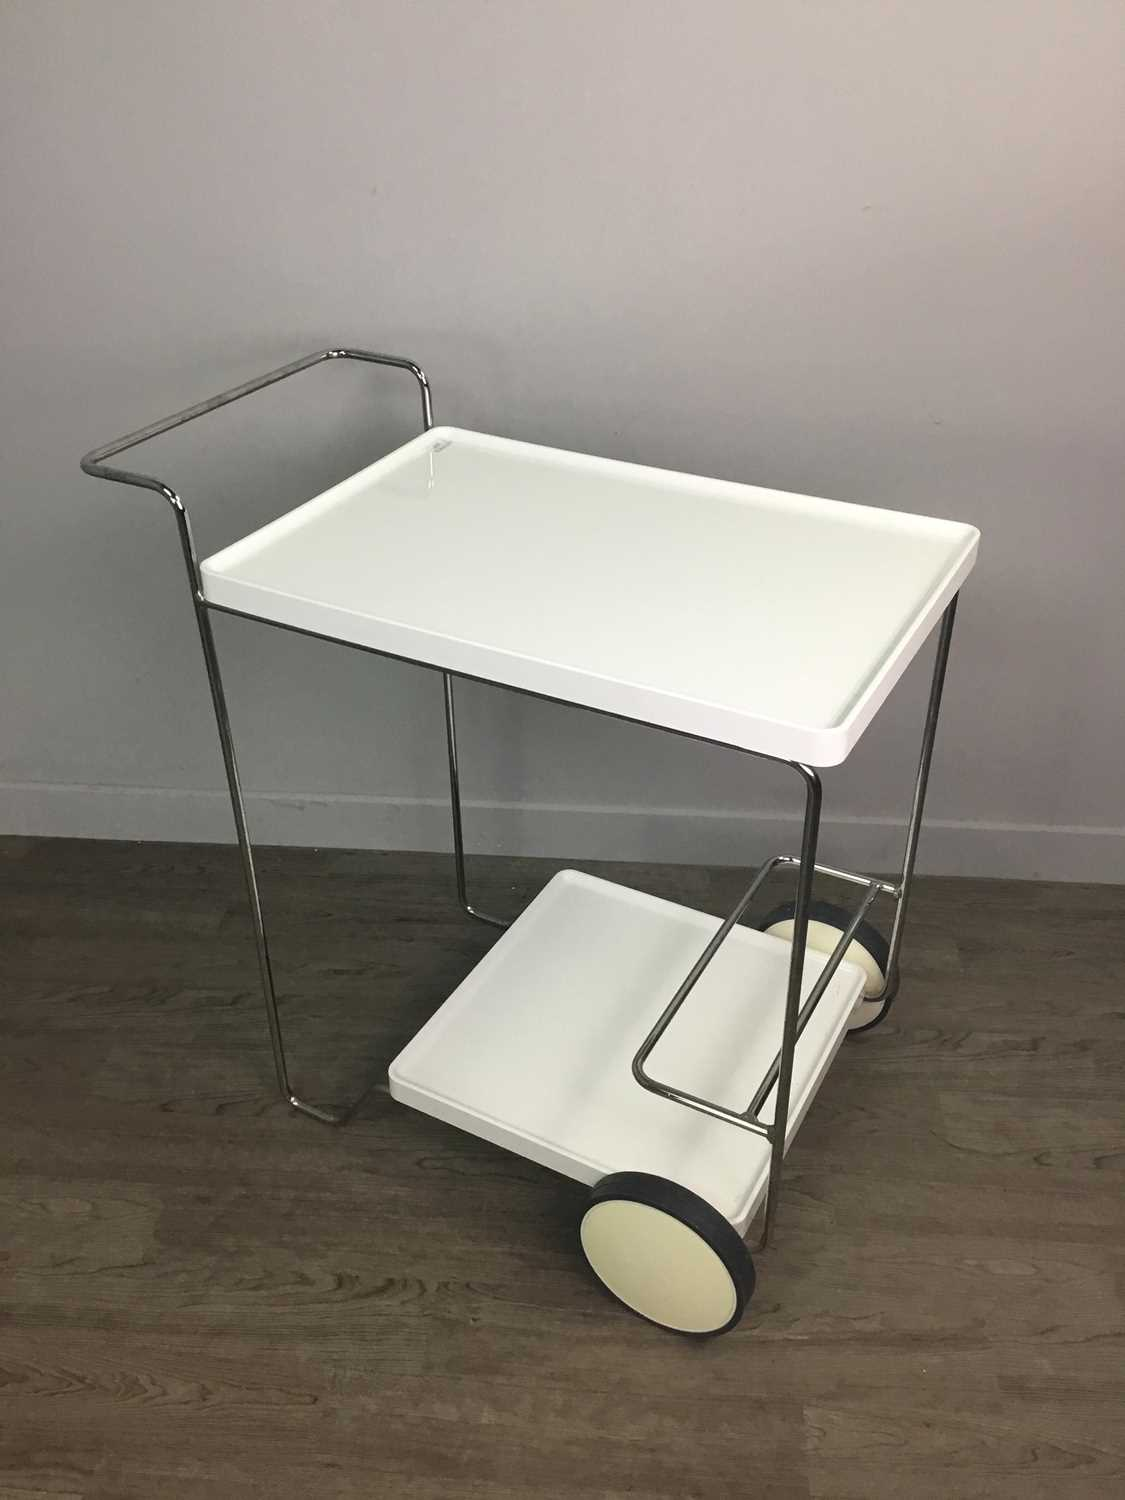 Lot 1337 - A CALLIGARIS MODERNIST DRINKS TROLLEY